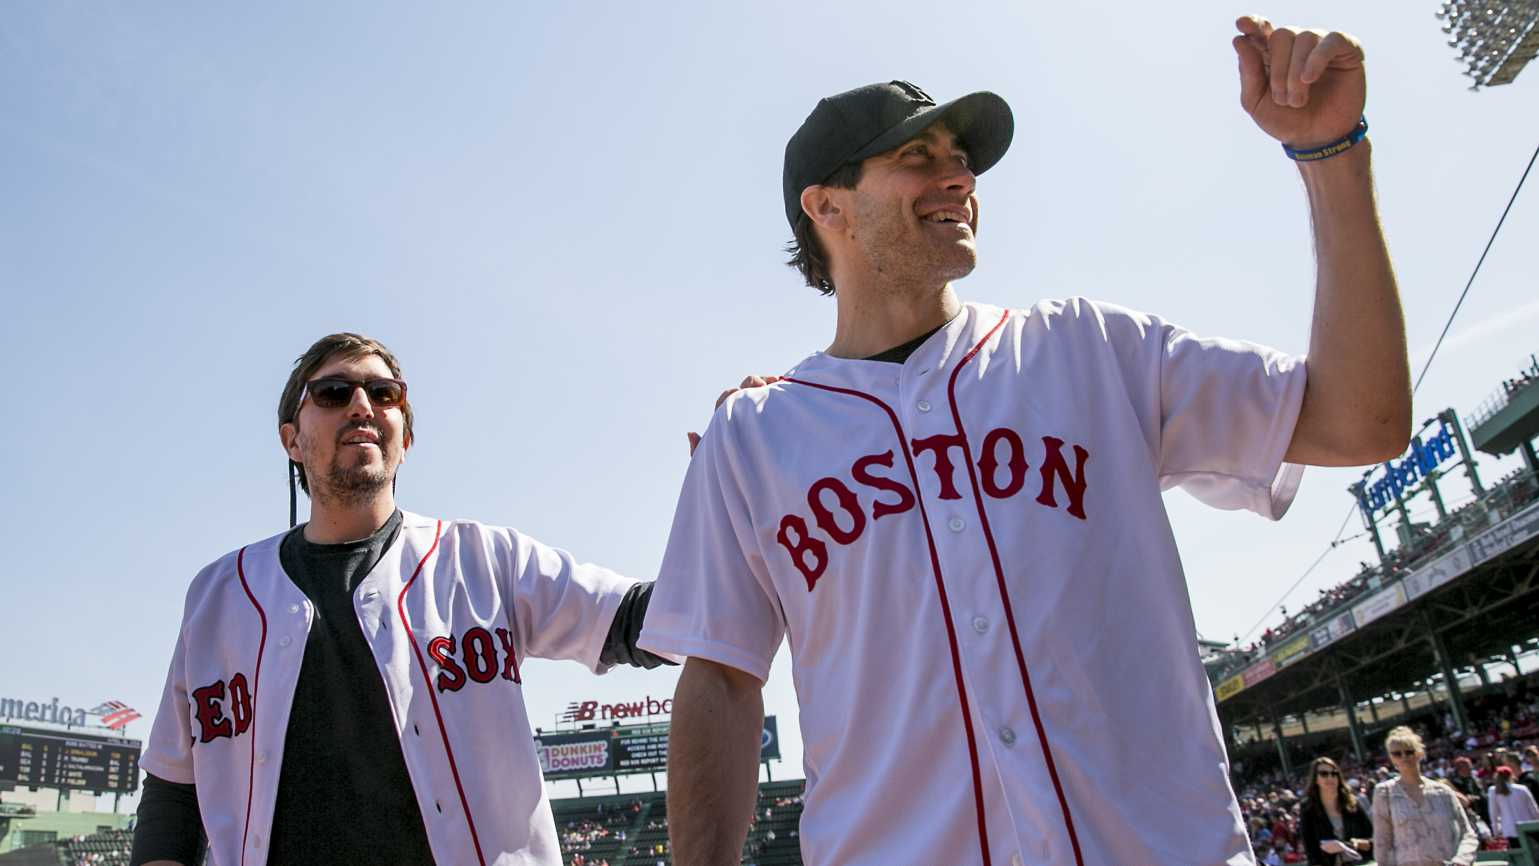 Jeff Bauman with Jake Gyllenhaal at a Boston Red Sox game